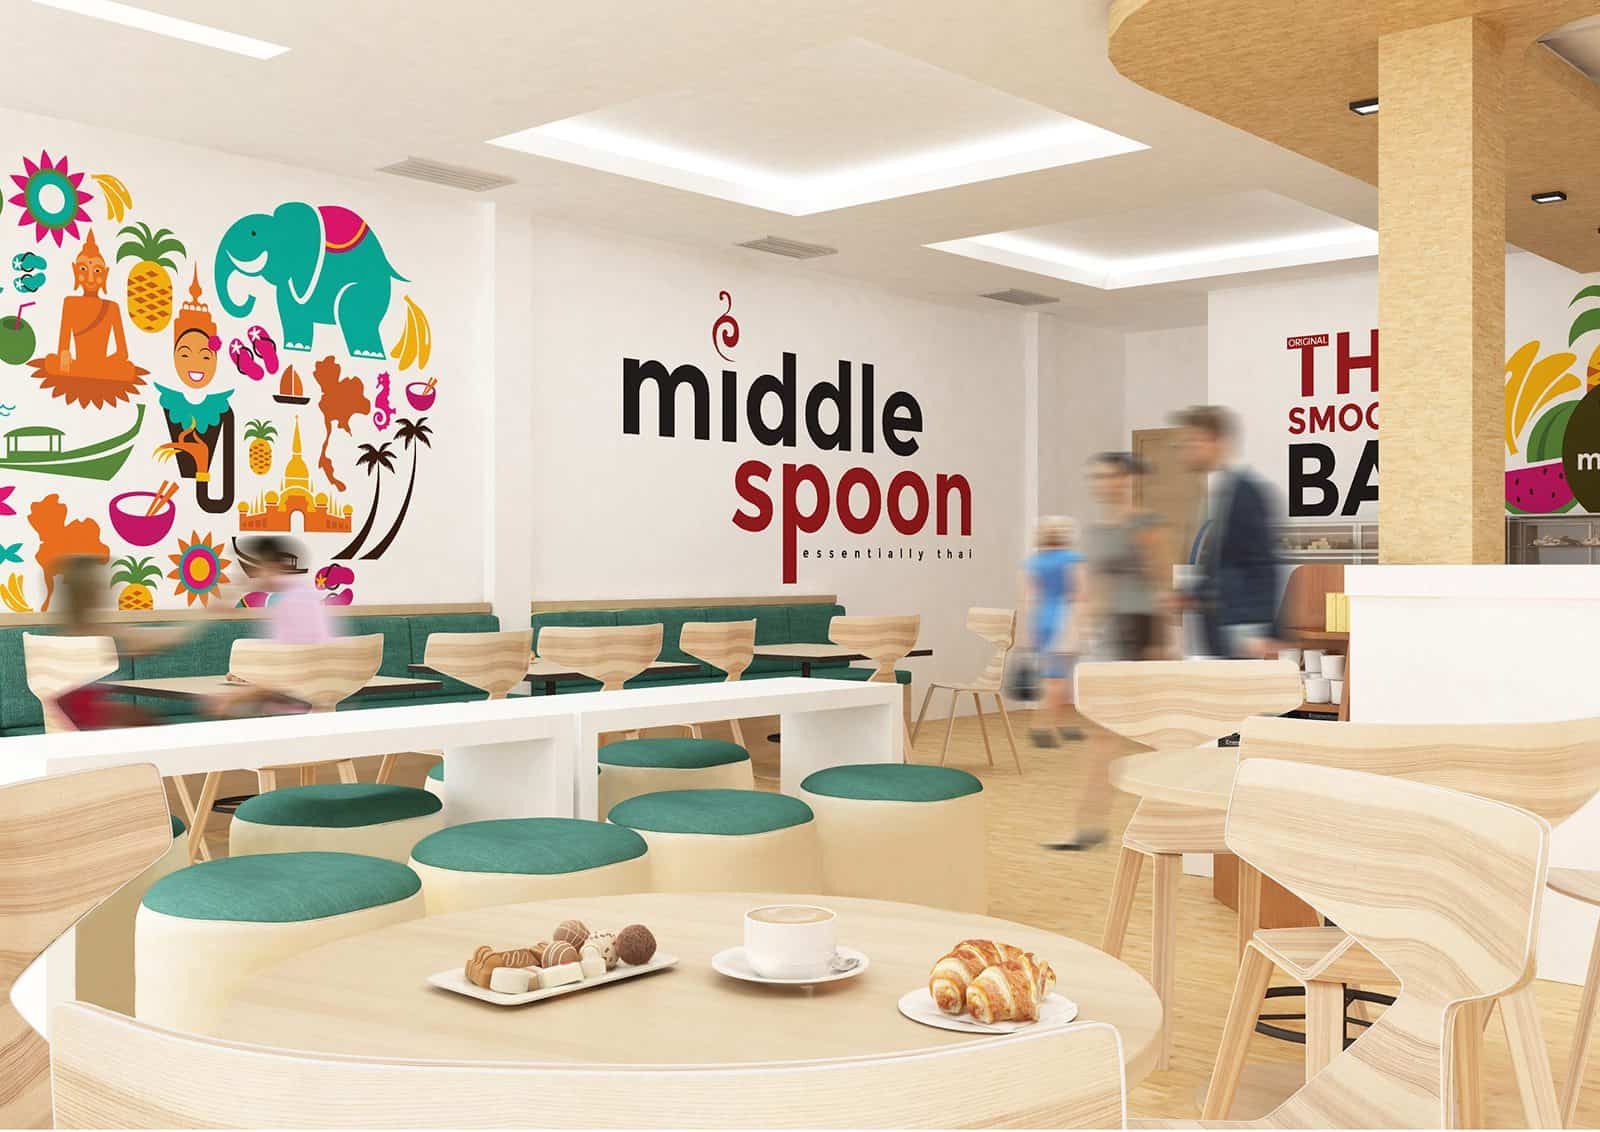 Middlespoon 7X